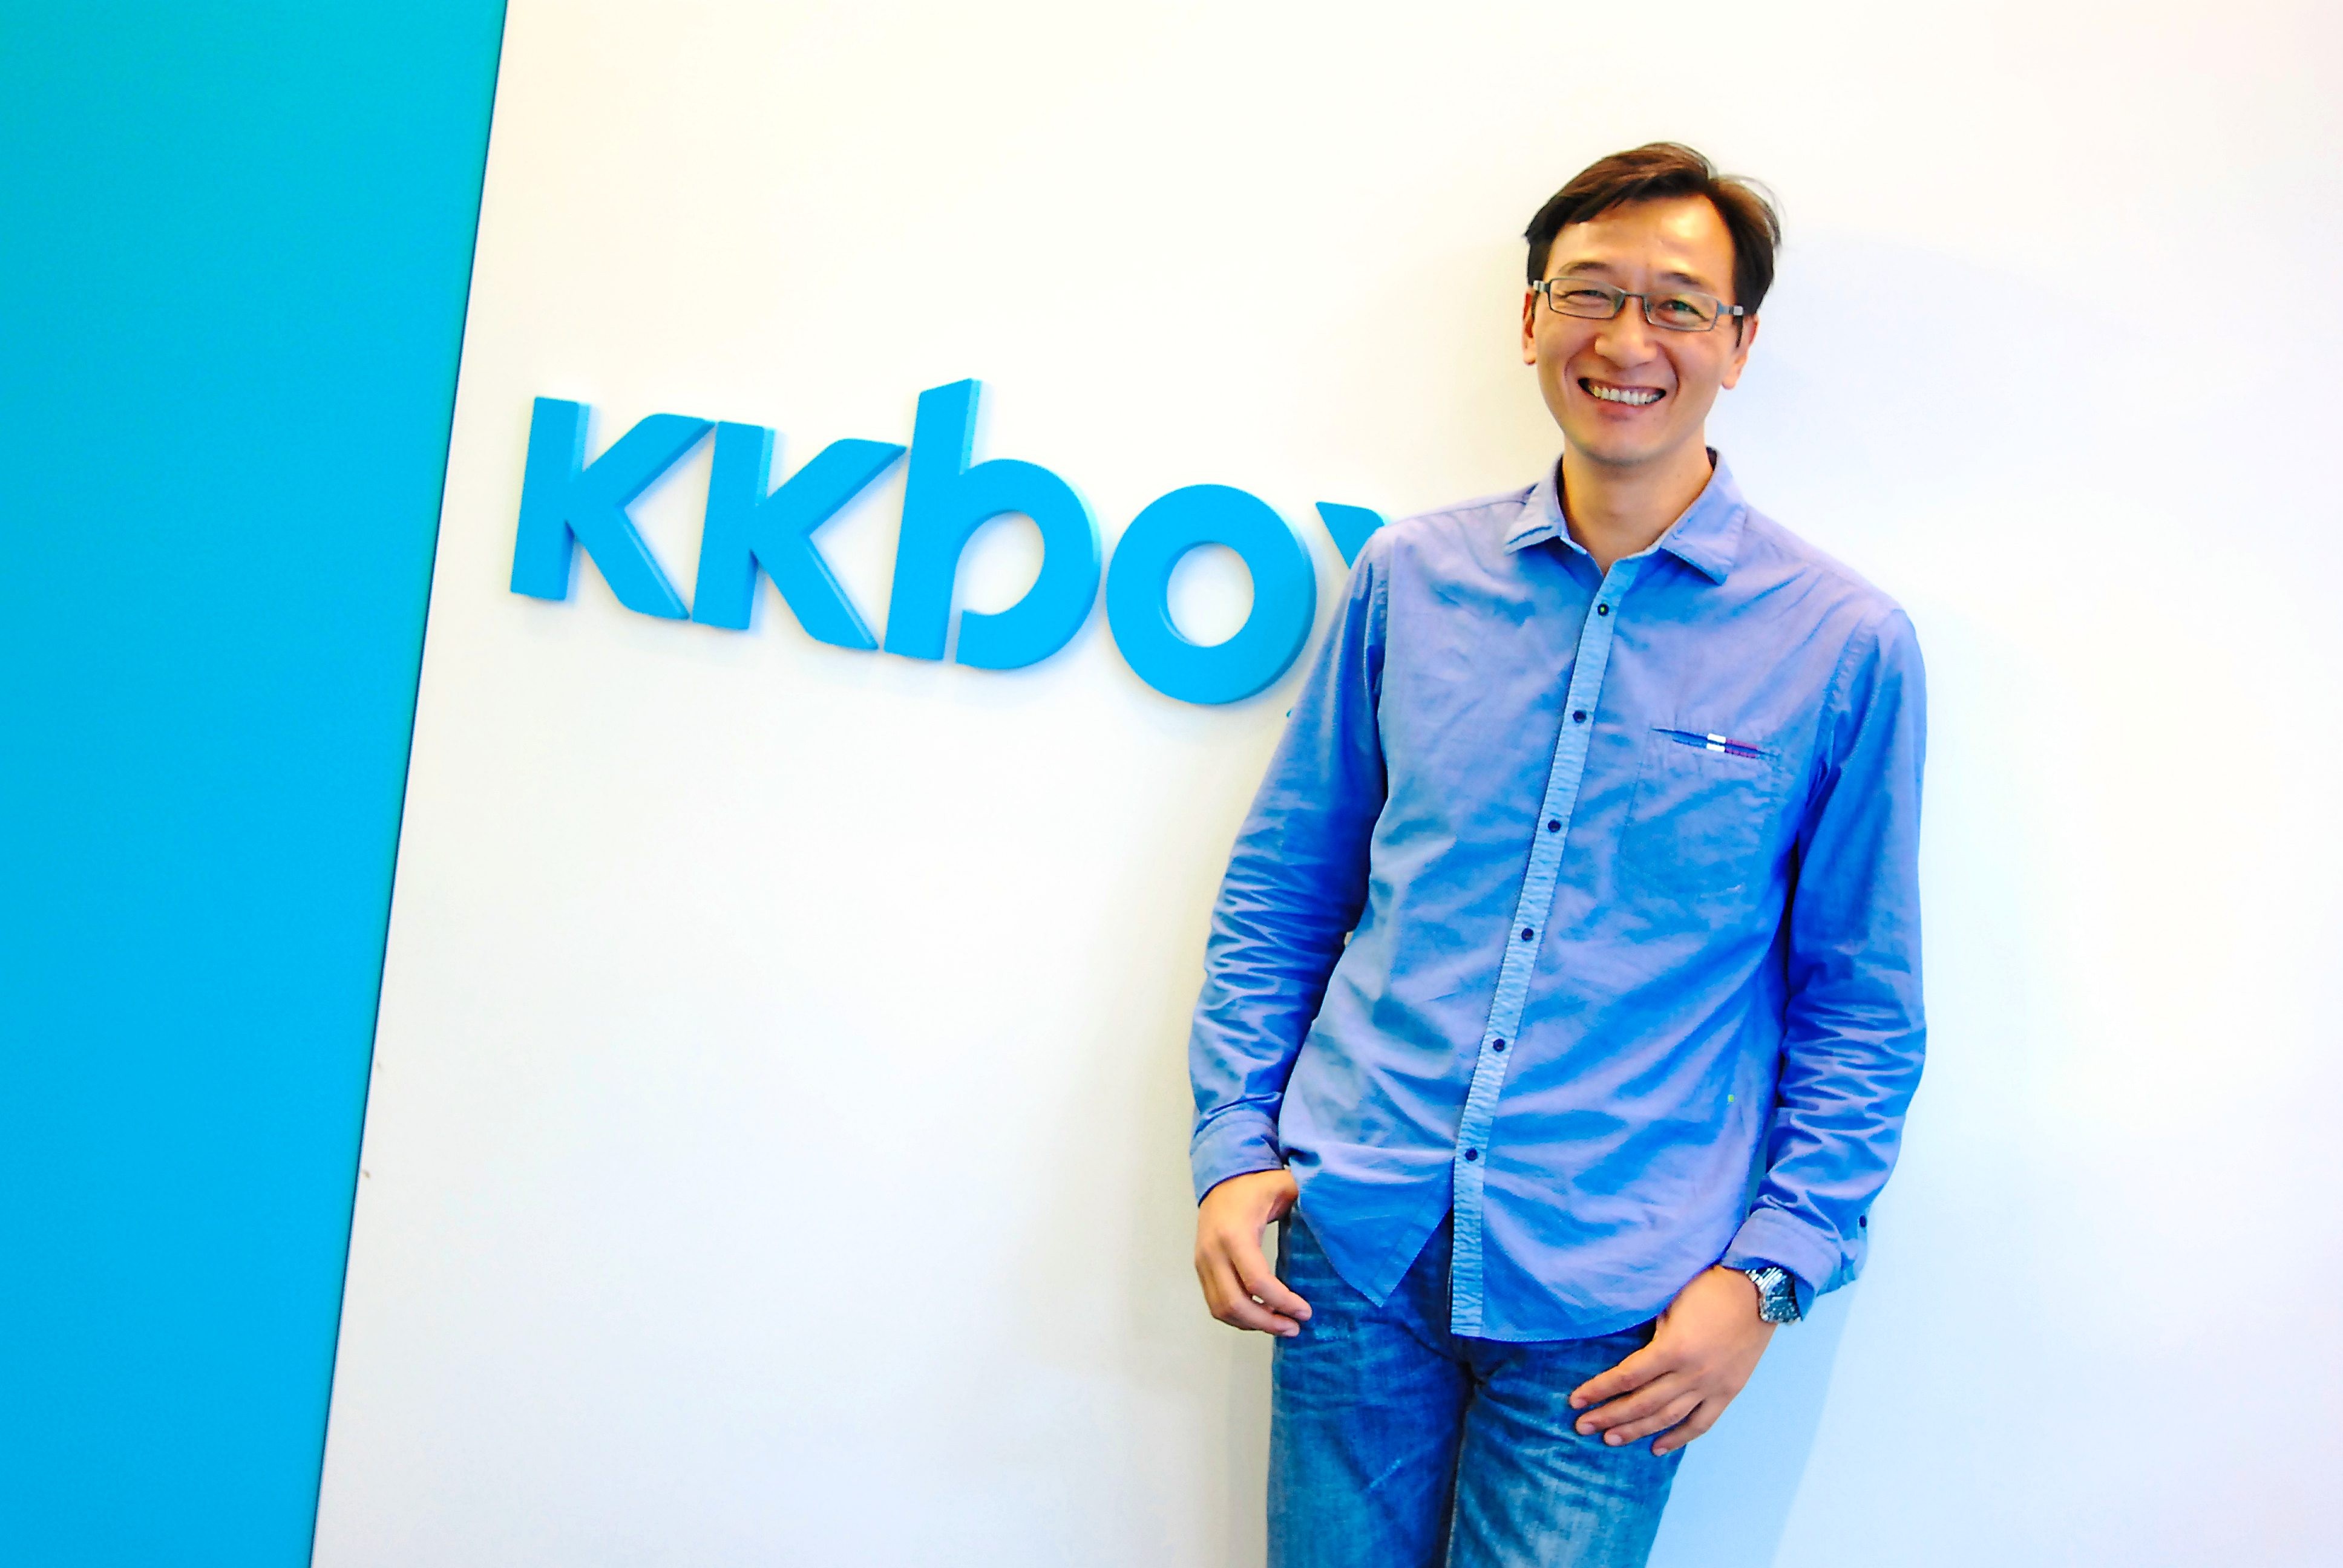 Ho says KKBOX is one of the few music streaming service providers that's profitable. The company has been making money for the last five years. Photo: KKBOX